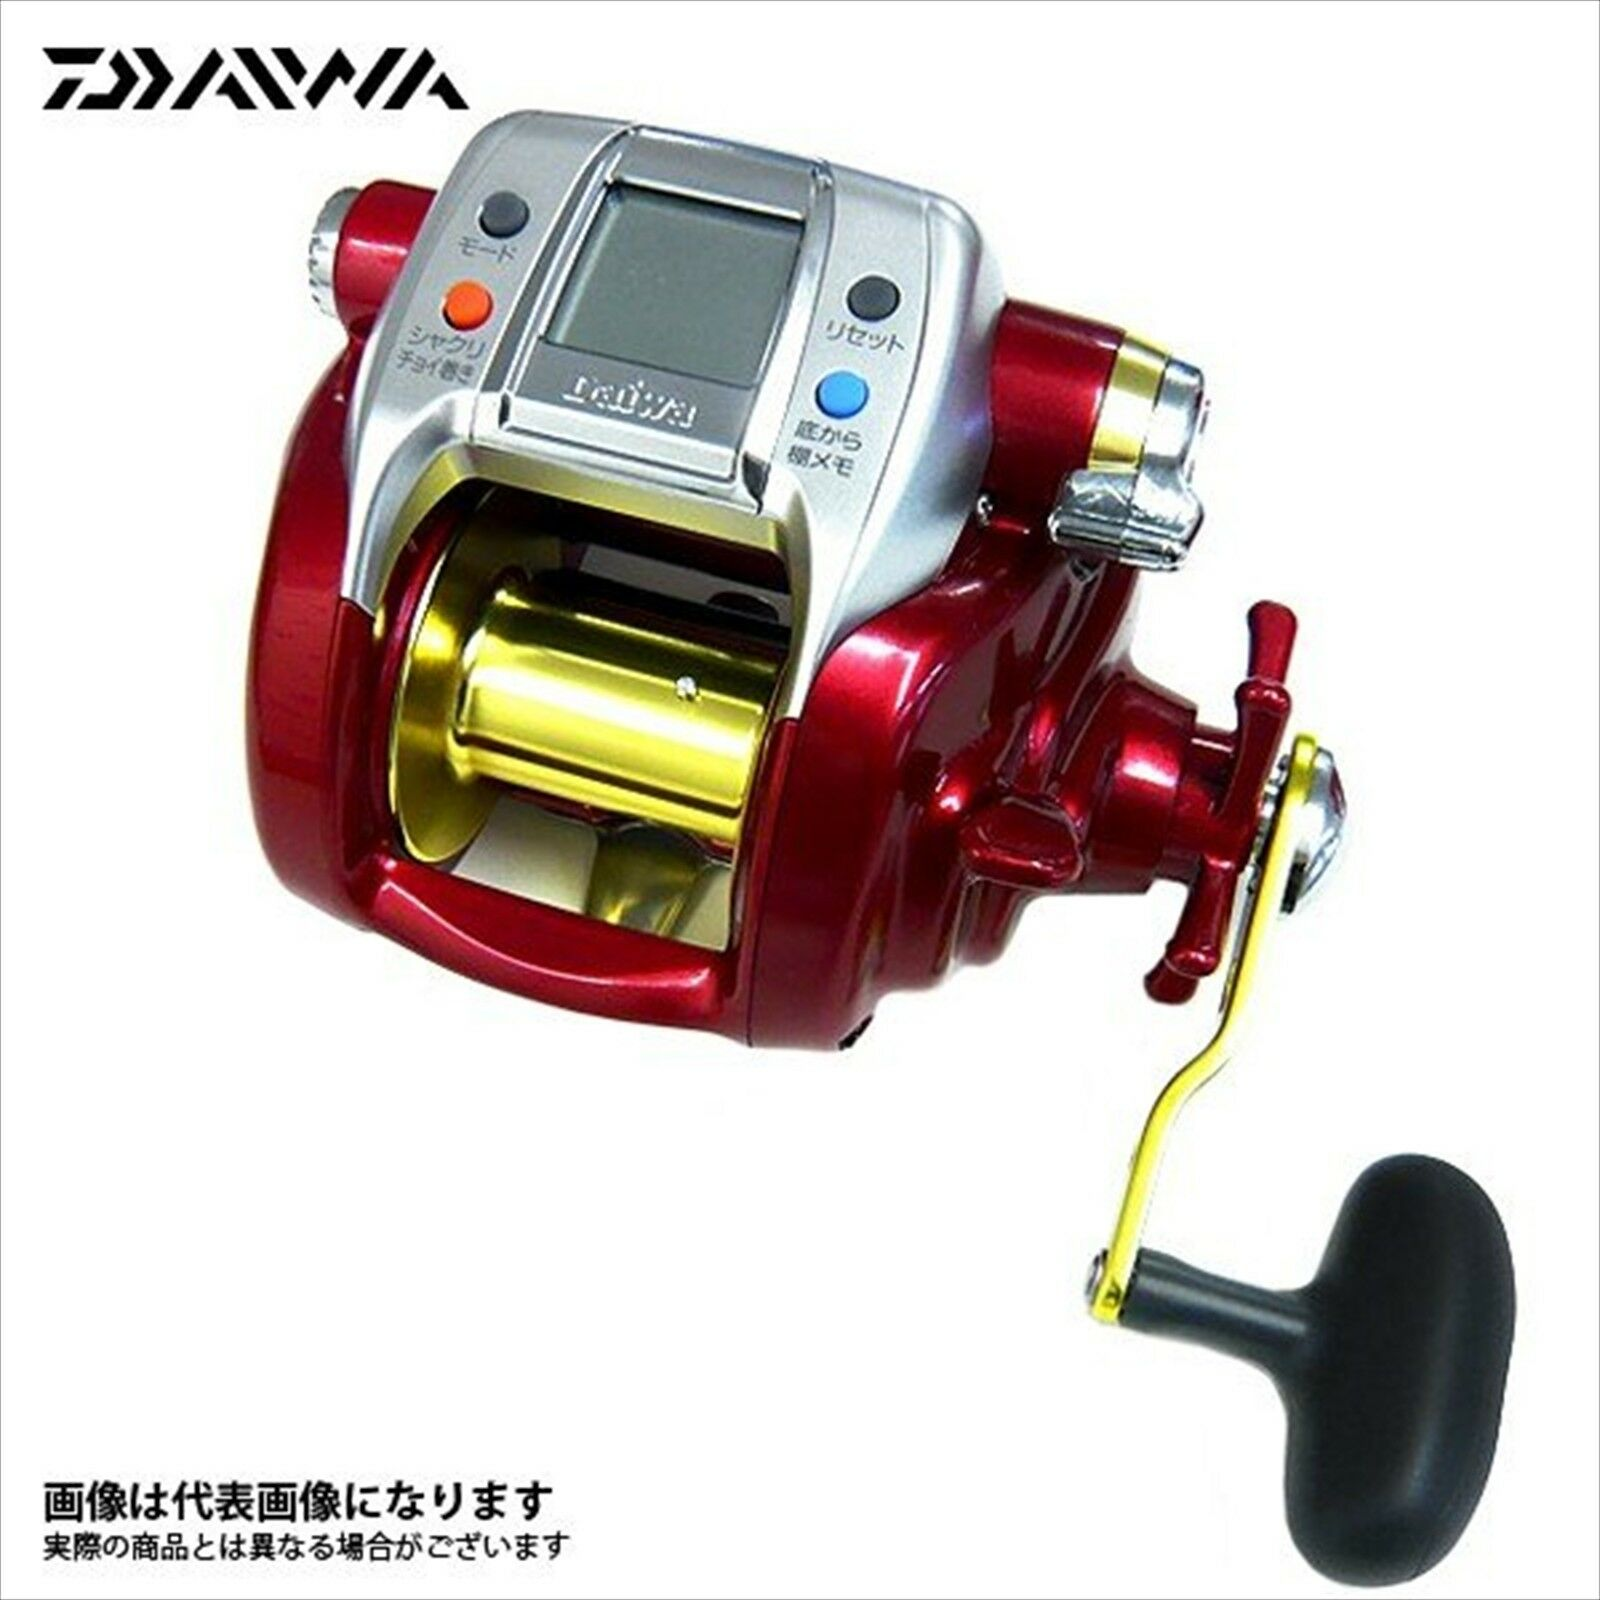 DAIWA HYPER TANACOM 600R (LIMITED COLOR) PE (66lb)-500m Electric Reel NEW